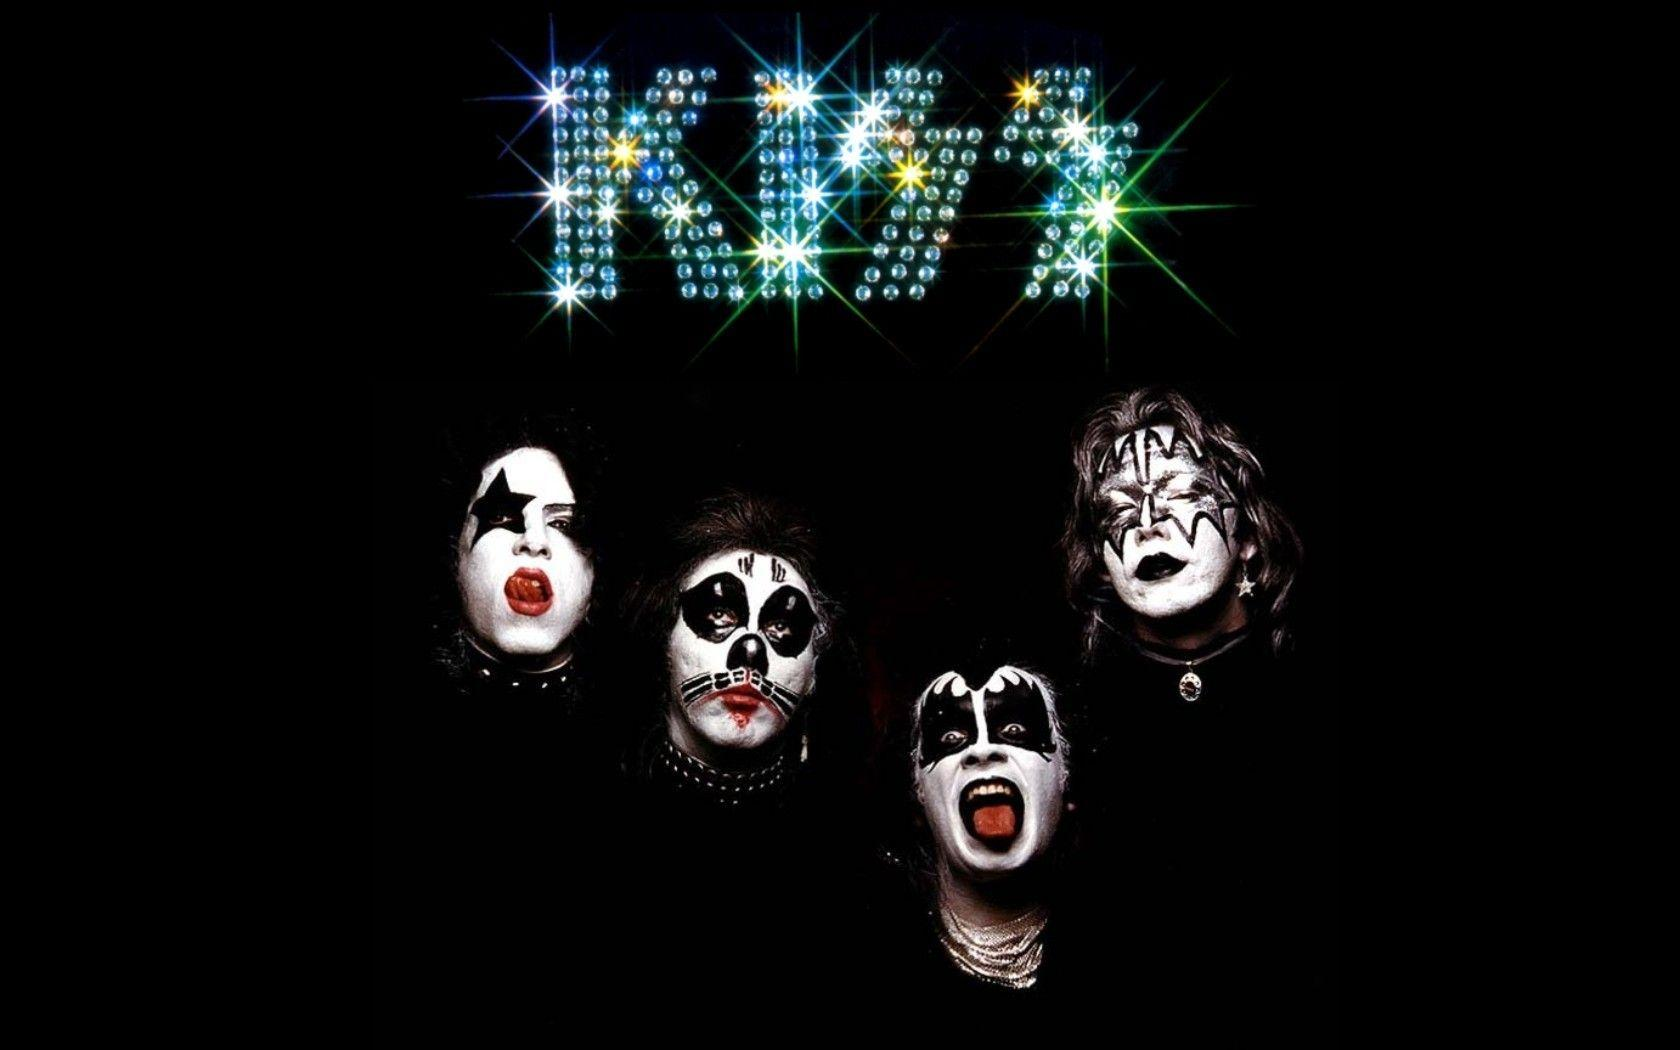 Hd Music Wallpapers For Android Group 62: KISS Band Wallpapers